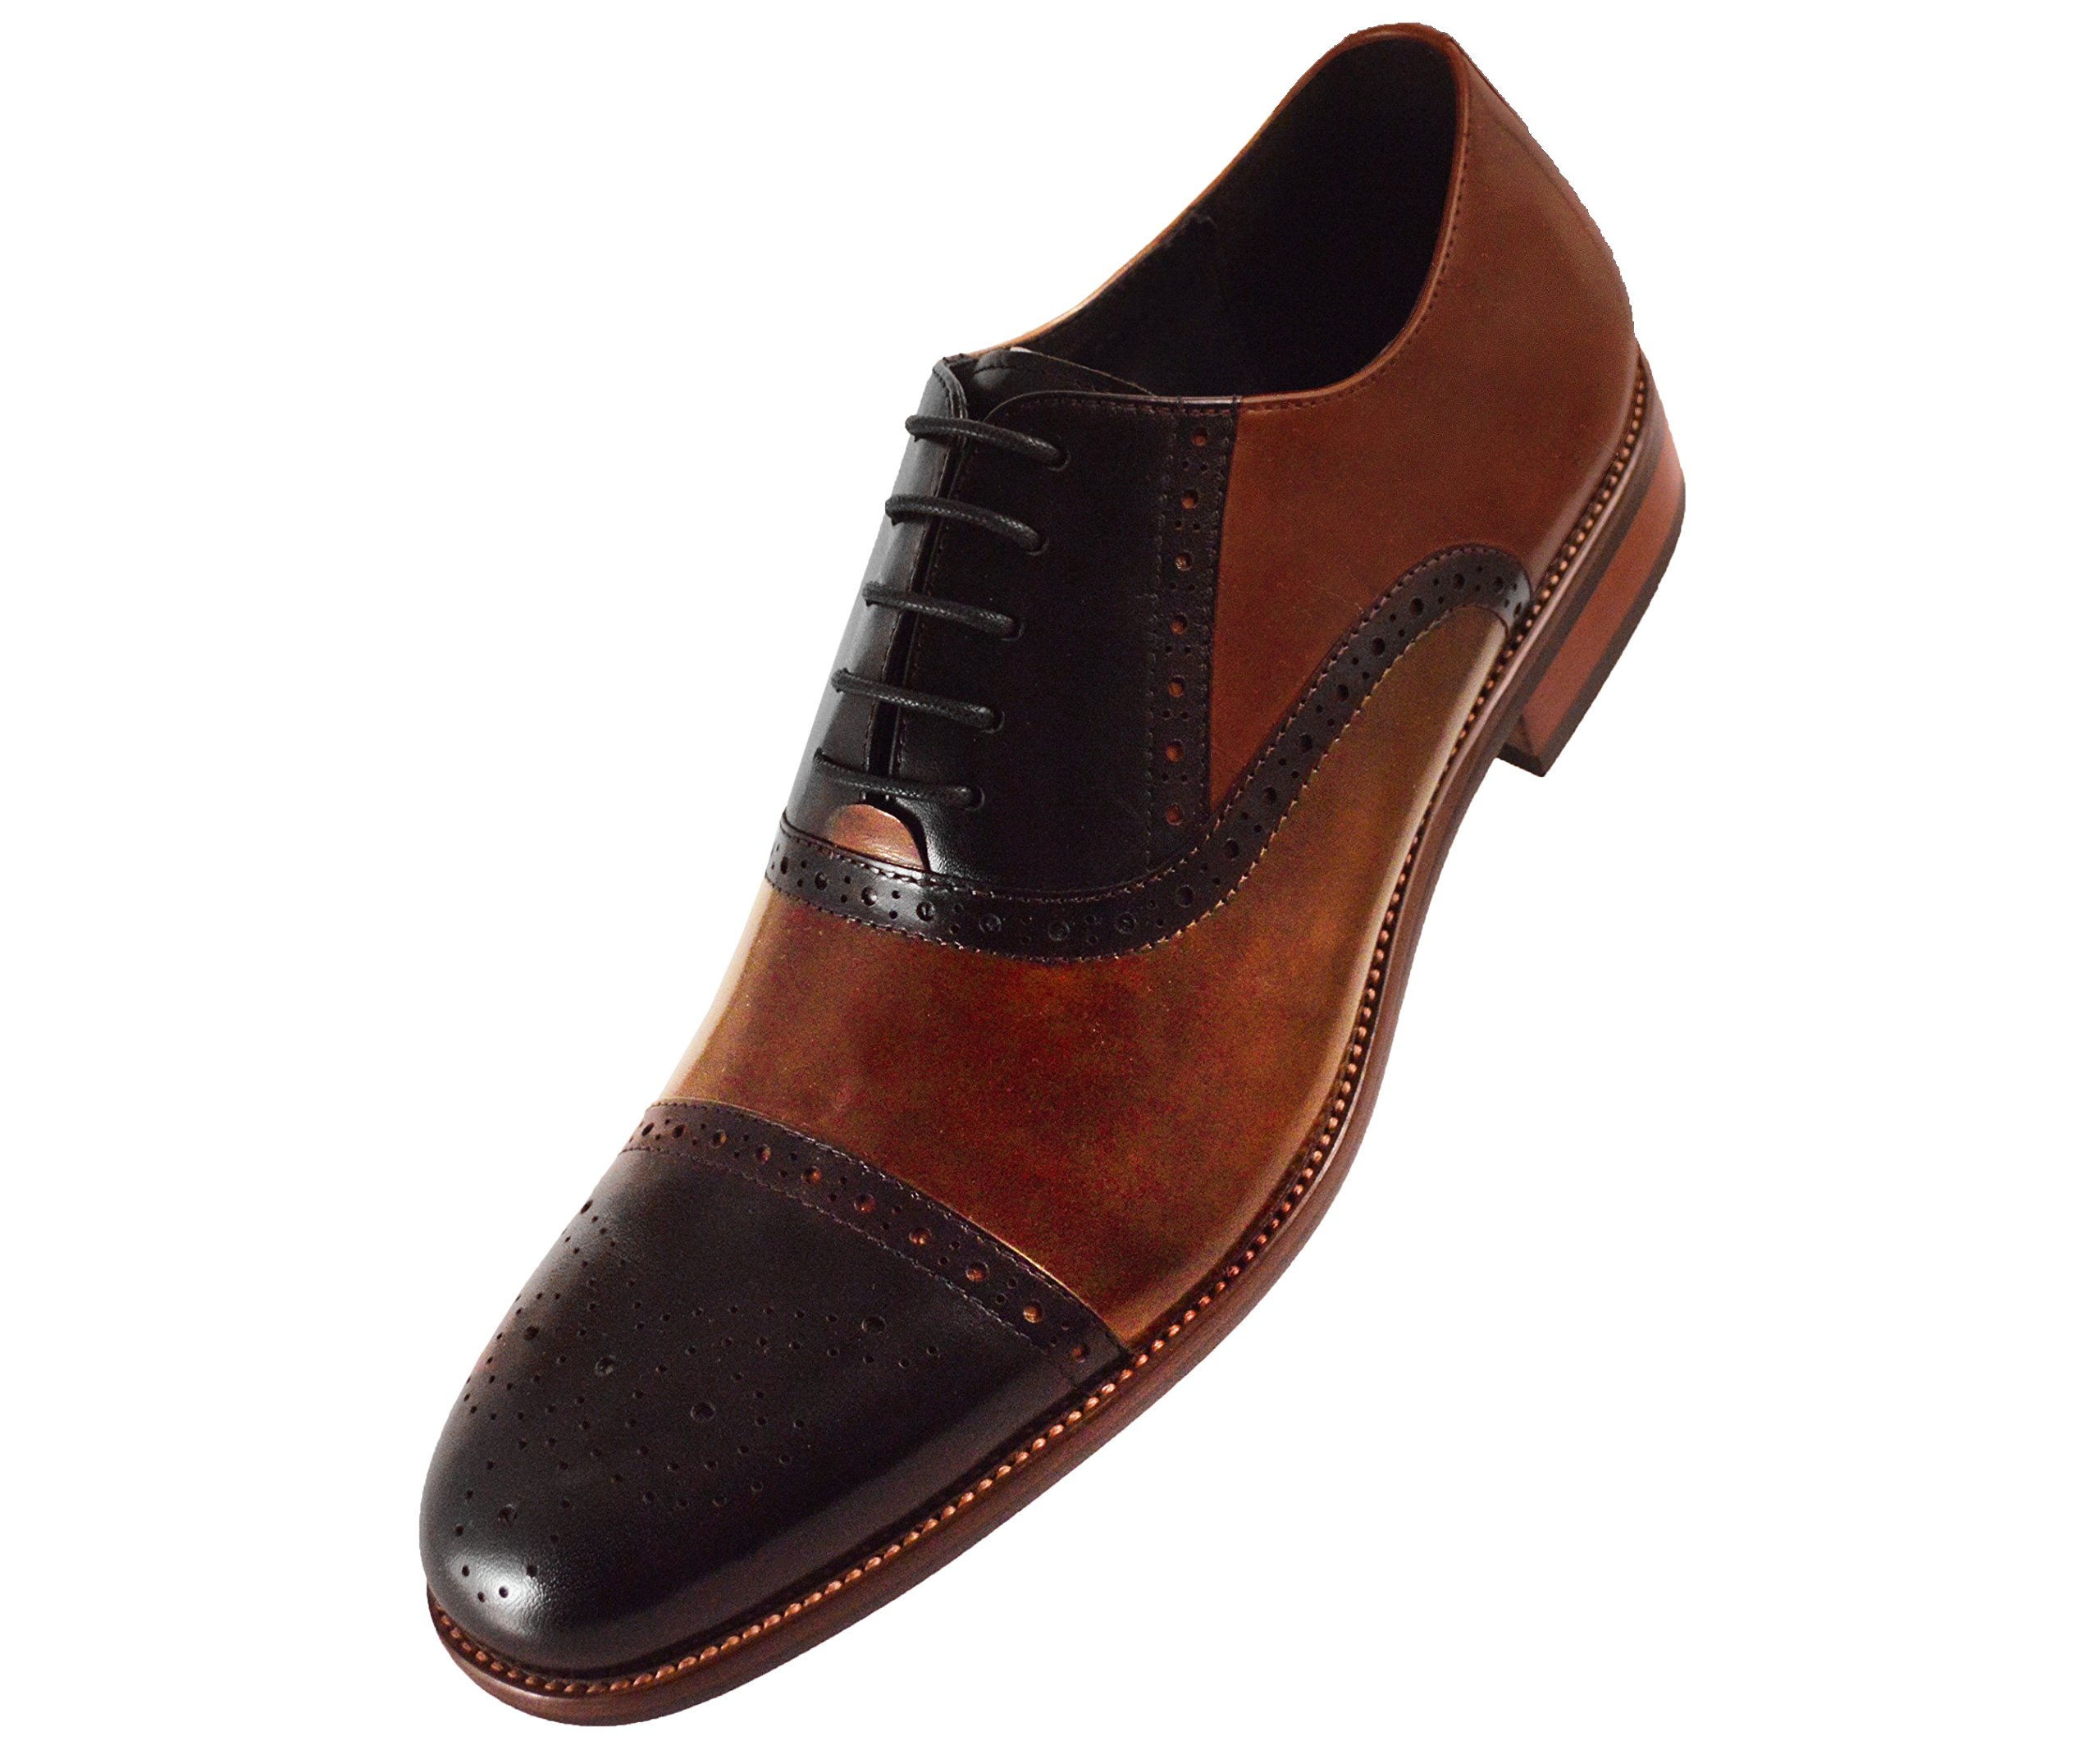 Asher Green Mens Two Tone Stitched Leather Cap Toe Oxford Dress Shoes